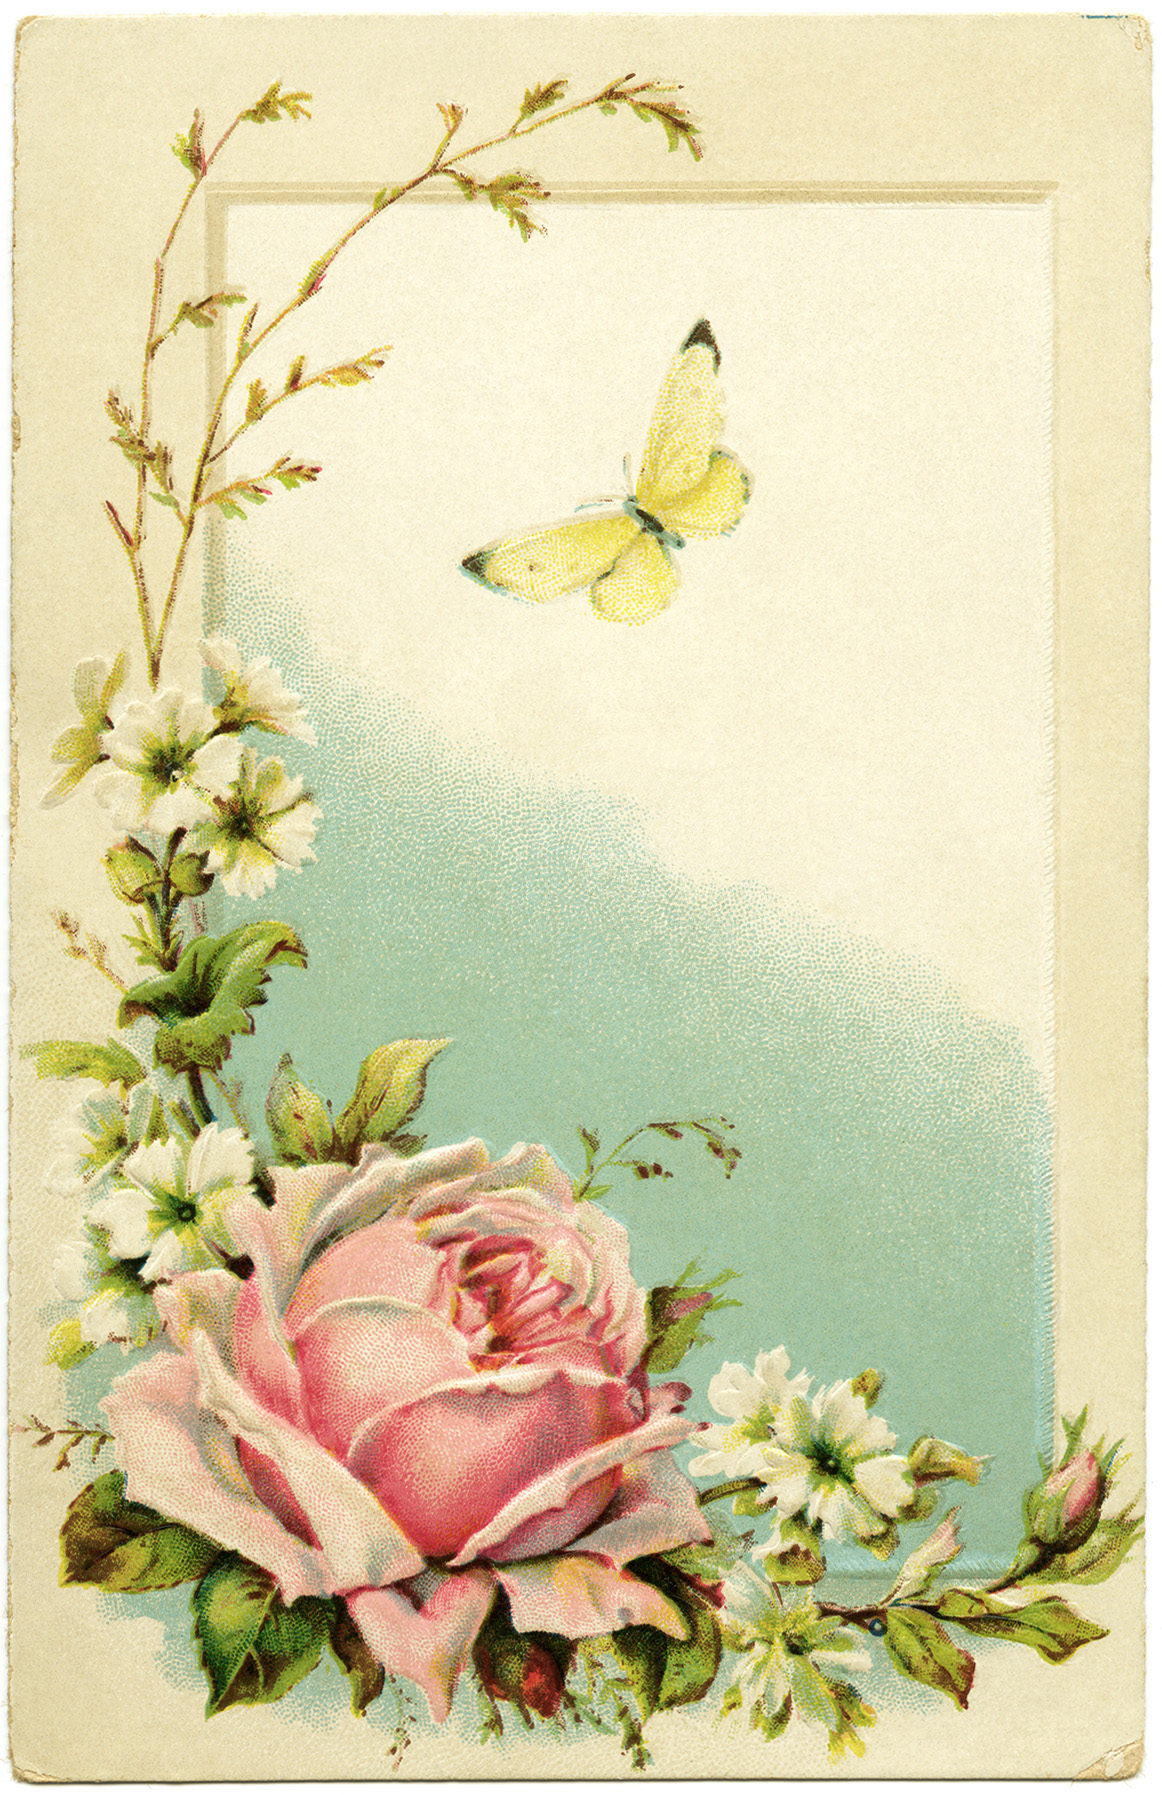 Rose And Butterfly Loving Greetings Postcard Free